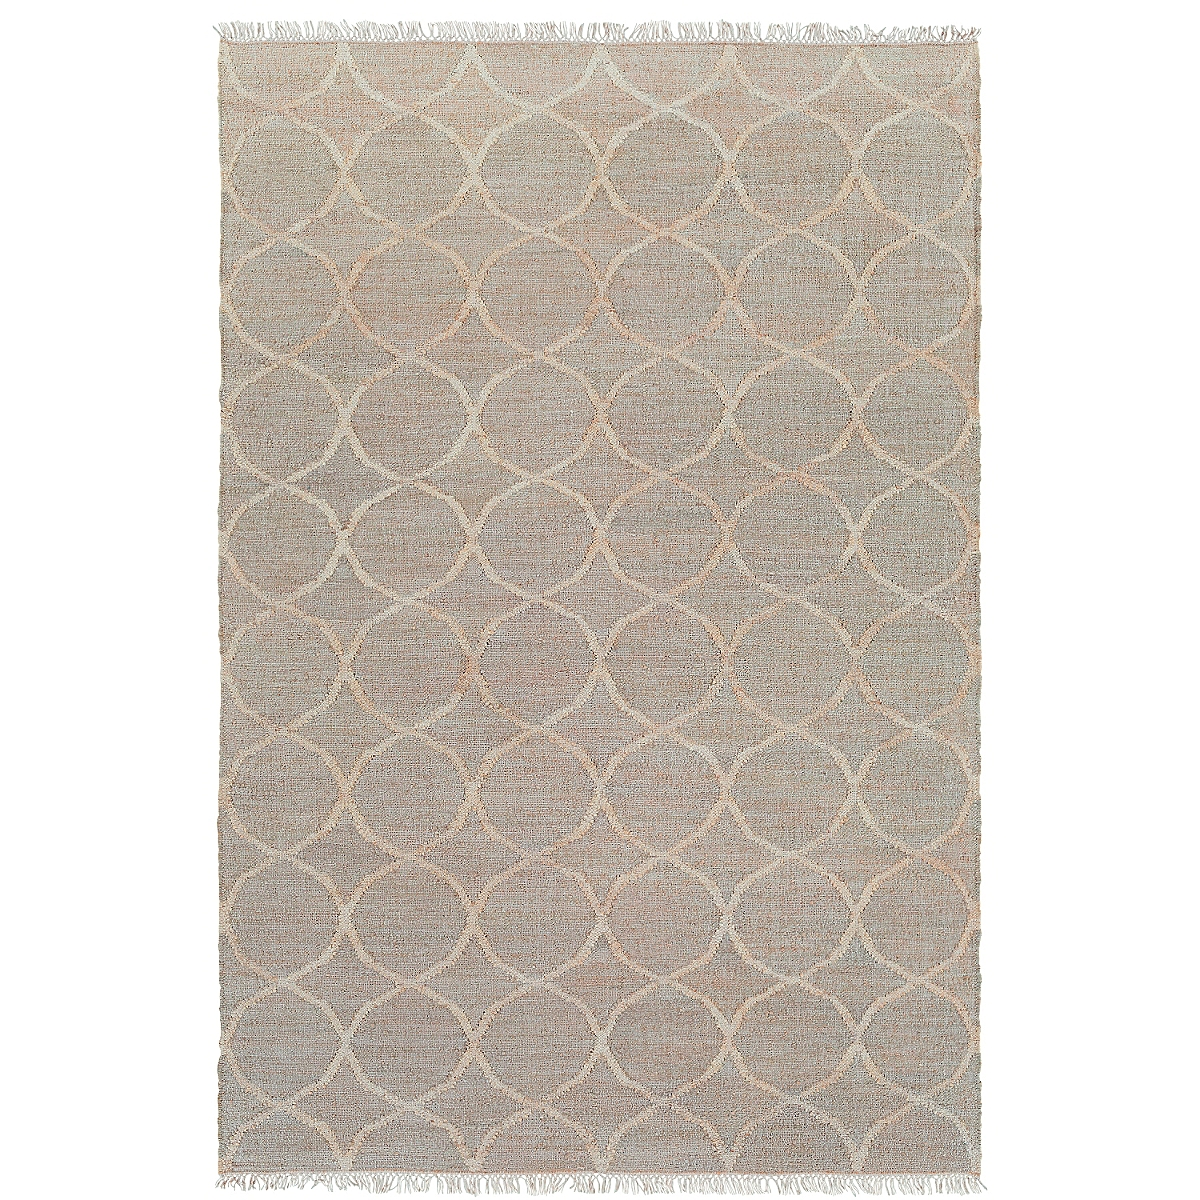 Reversible Jute Geometric Rug: Natural